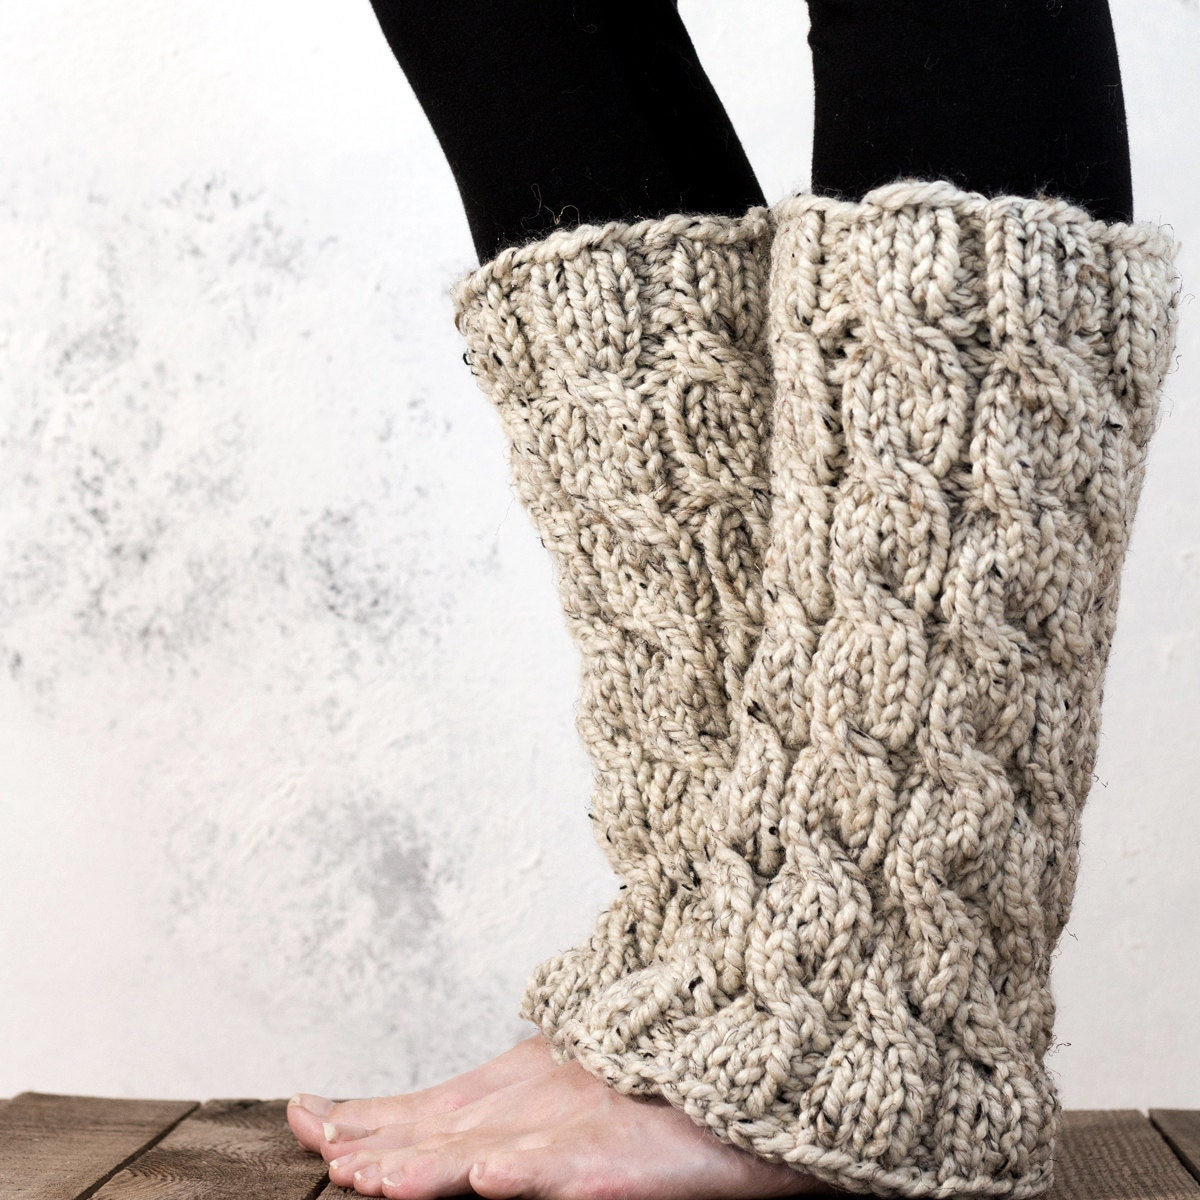 Knit Leg Warmers Cable Pattern : Cable Knit Leg Warmers Knitting Pattern MAJESTY a set of